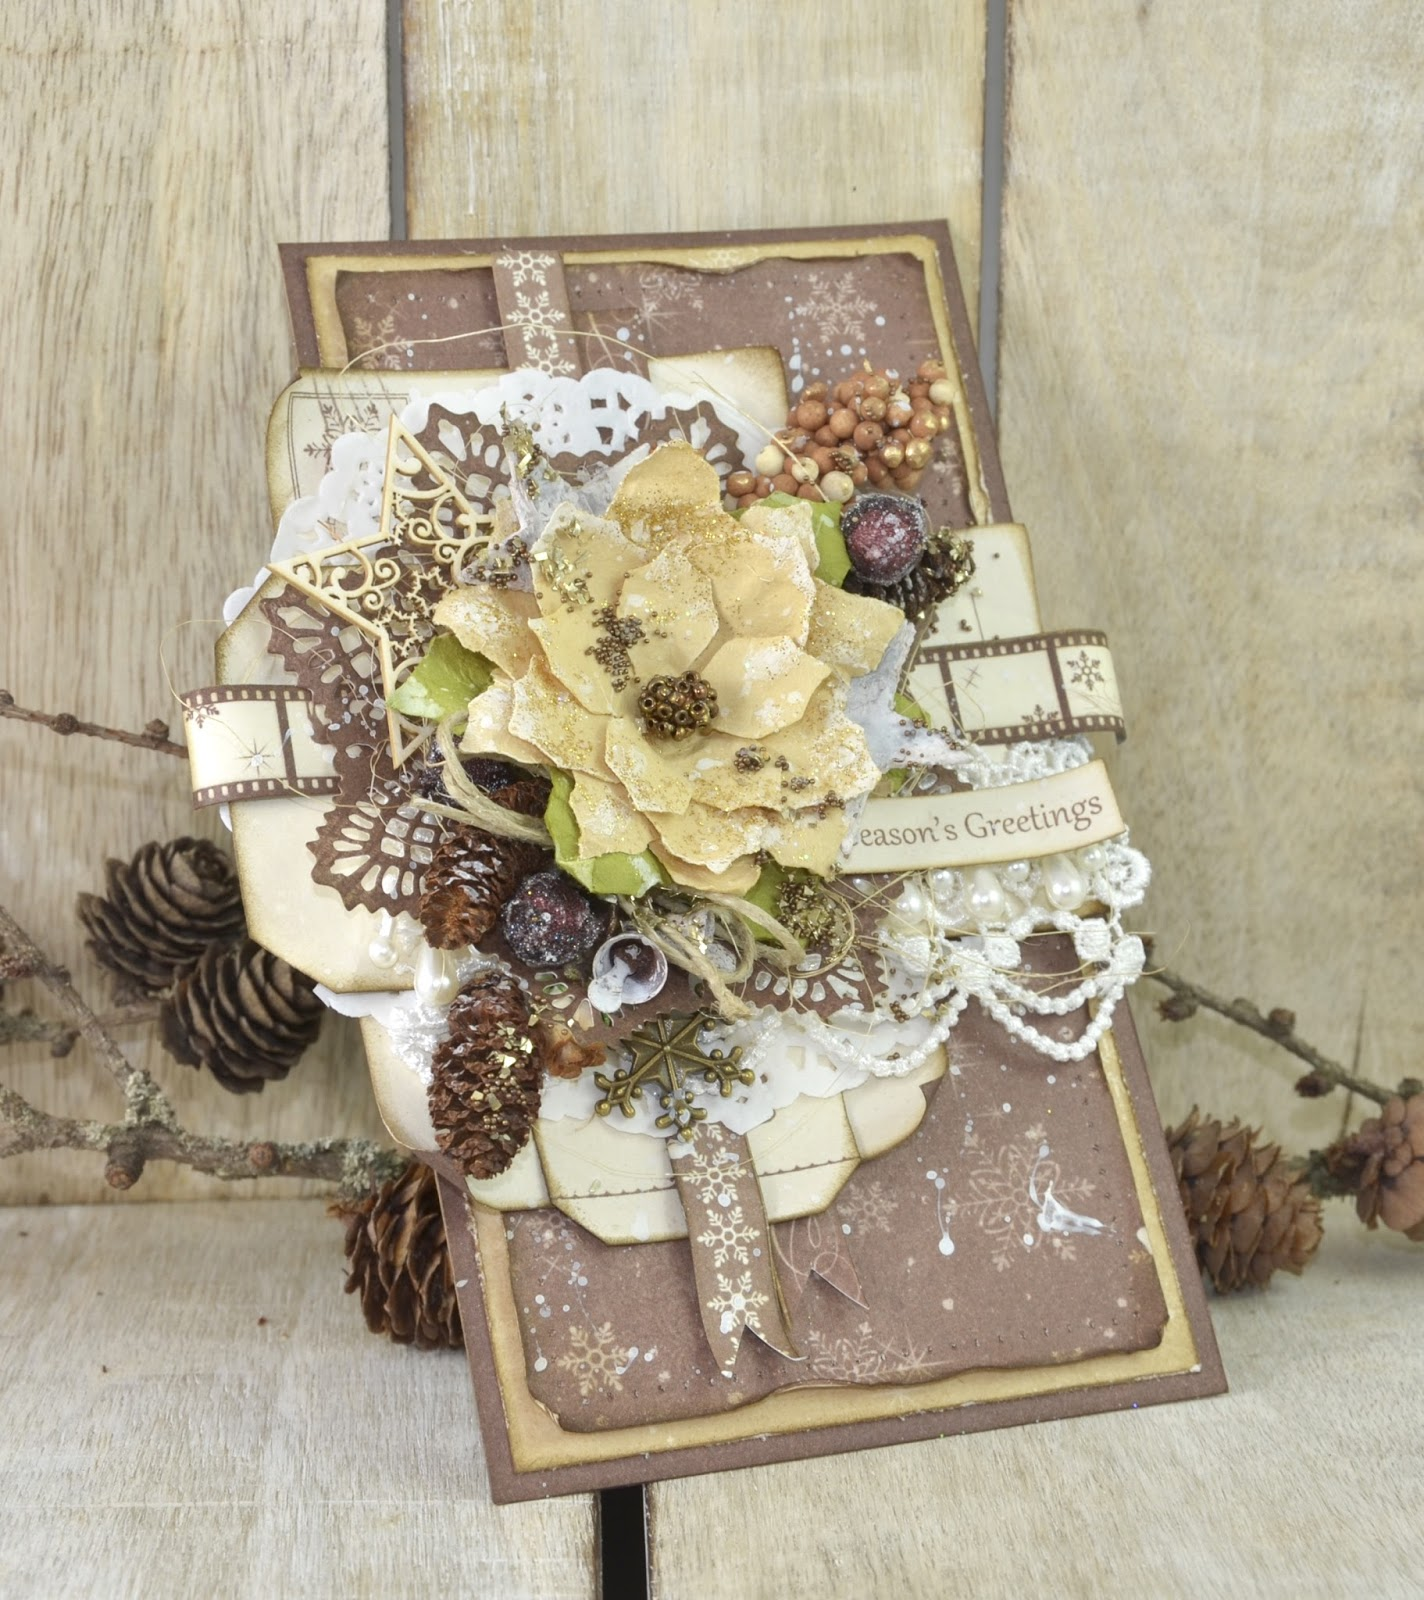 Live & Love Crafts' Inspiration and Challenge Blog: Season's Greetings ...